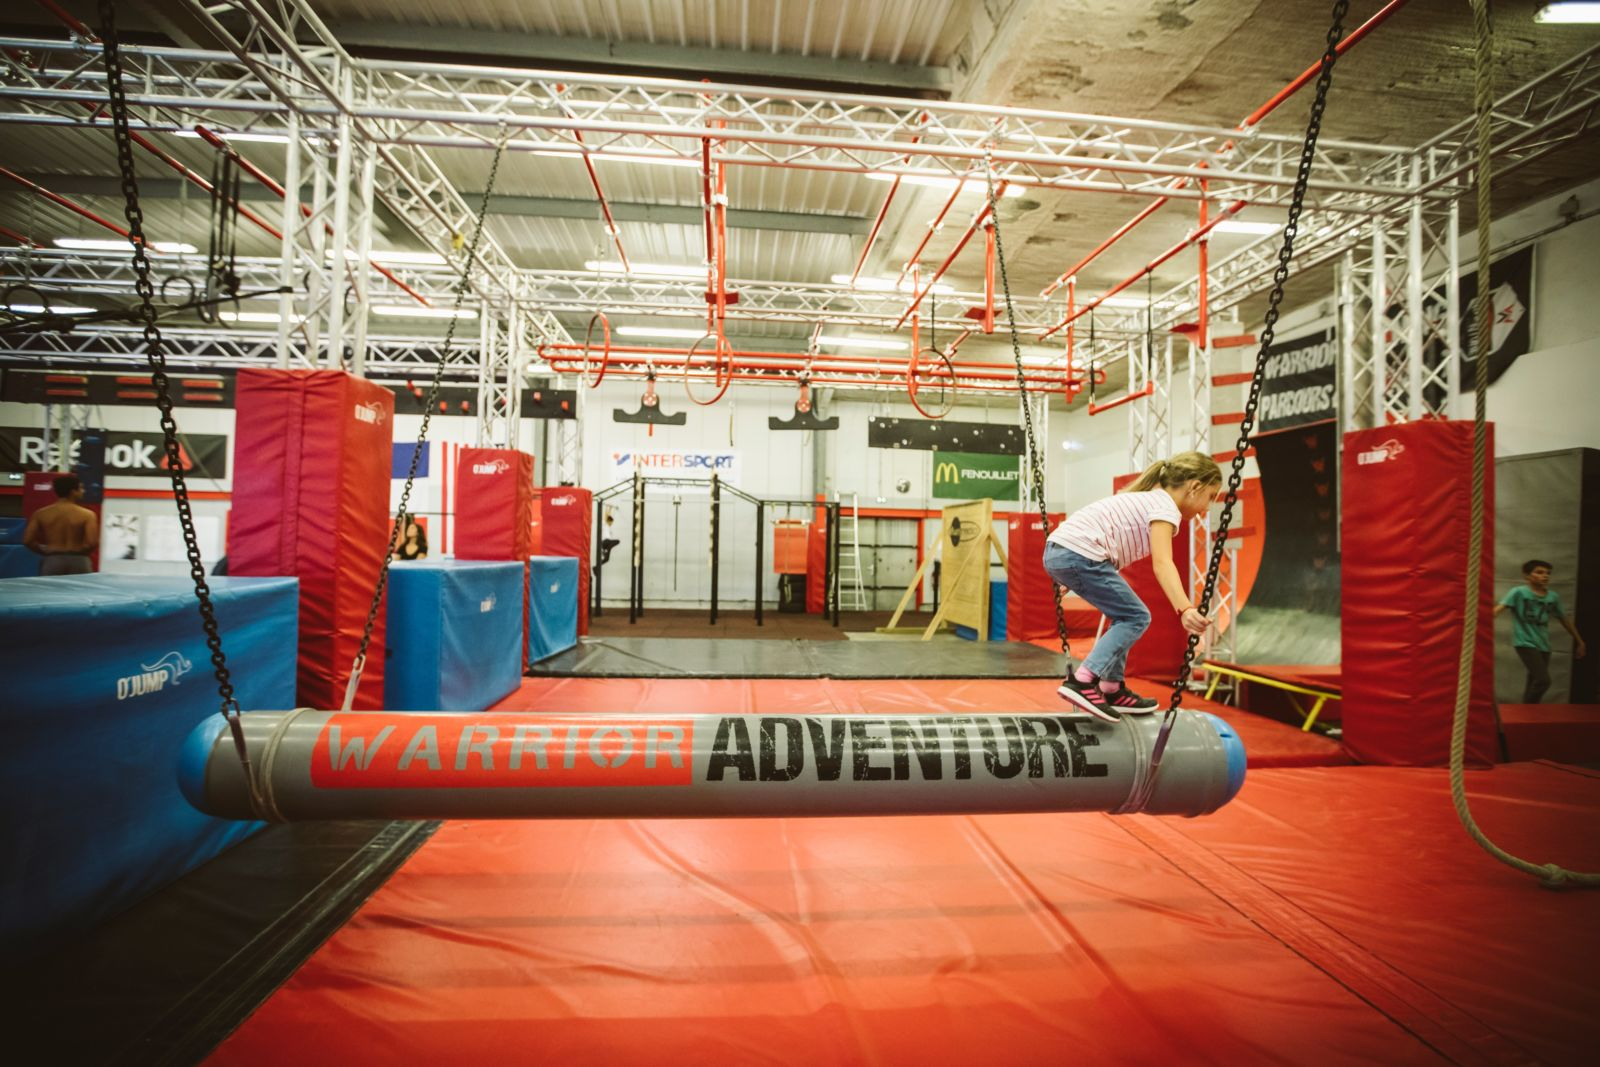 Warrior adventure - ninja warrior - toulouse